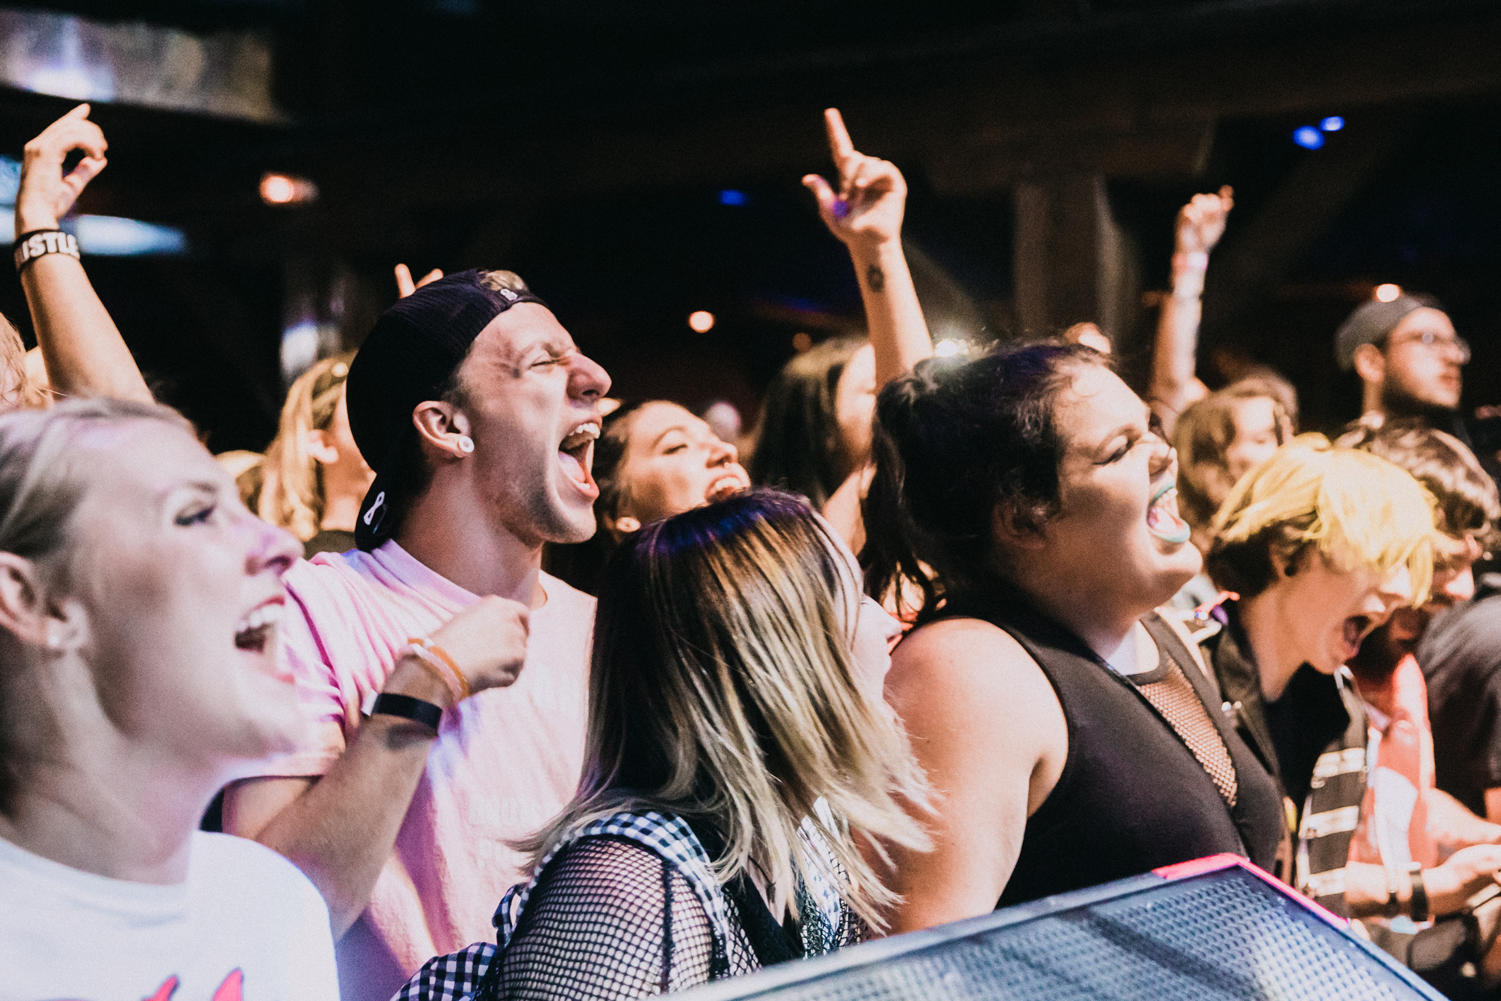 Fans dance and scream in front of the Republic stage during the venue's Emo Night event.